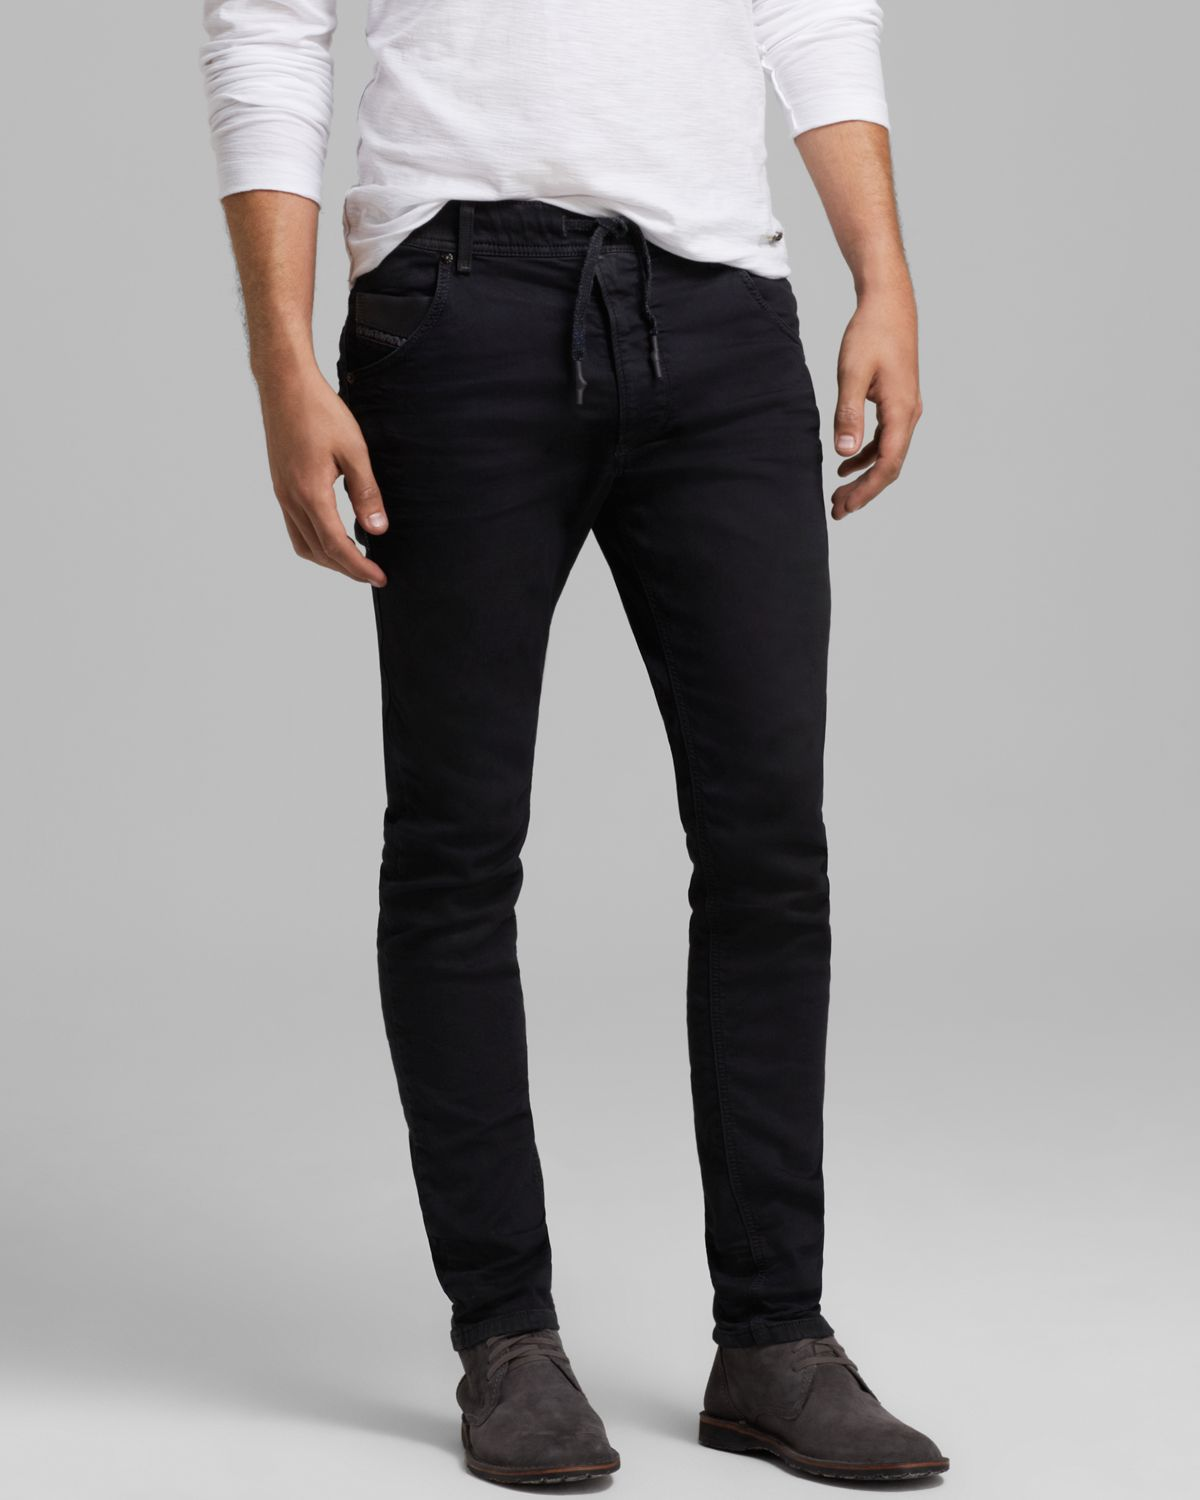 diesel-0603m-jeans-krooley-jogg-slim-fit-in-colored-denim-product-1-13044838-038667027.jpeg